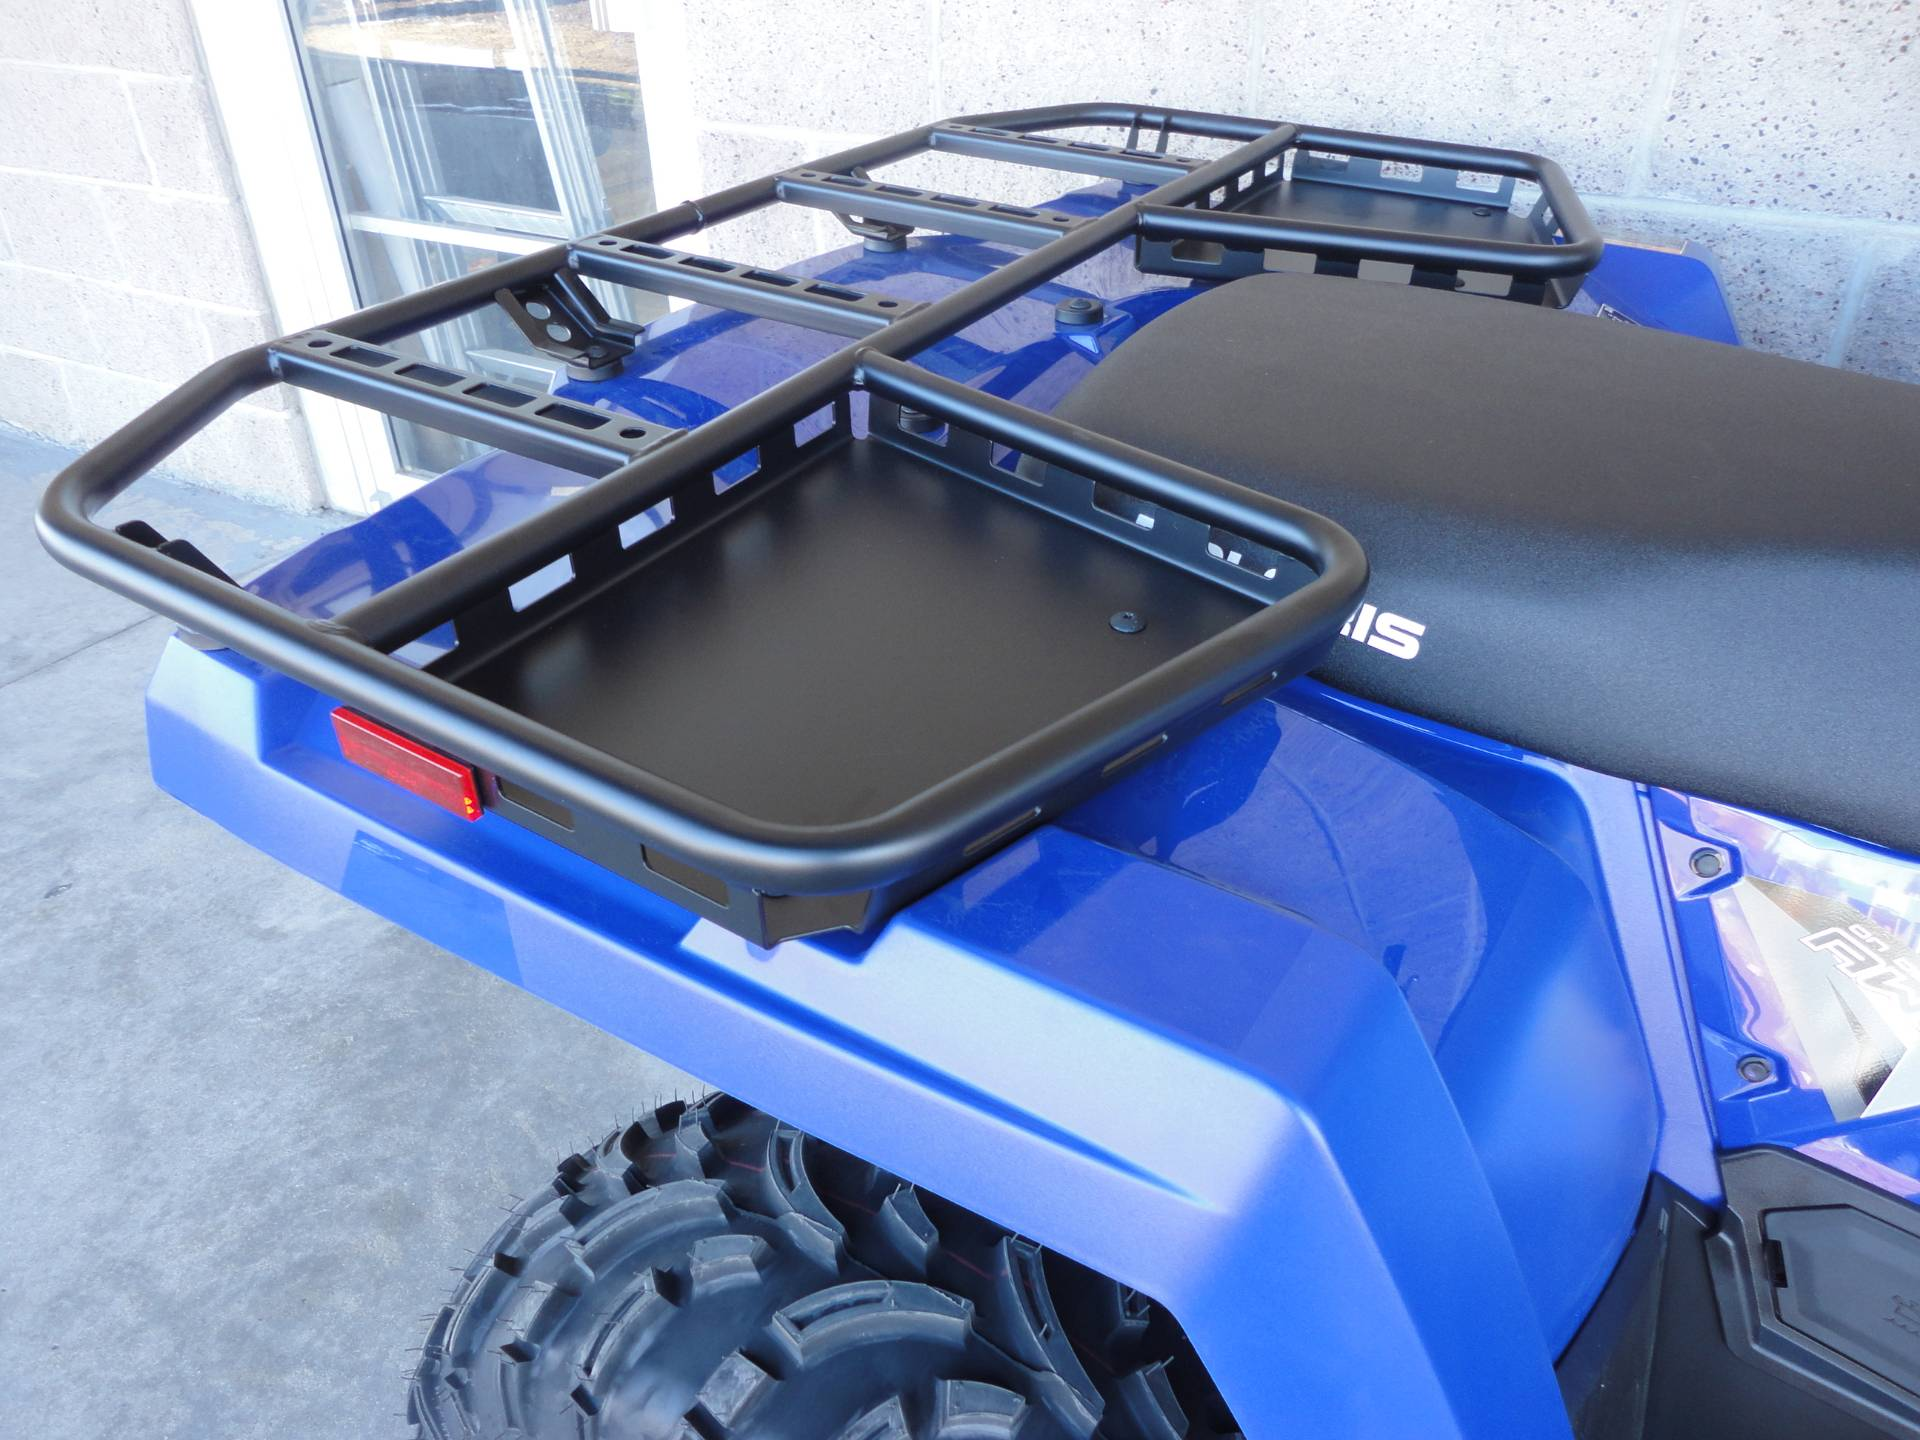 2020 Polaris Sportsman 450 H.O. Utility Package in Denver, Colorado - Photo 15